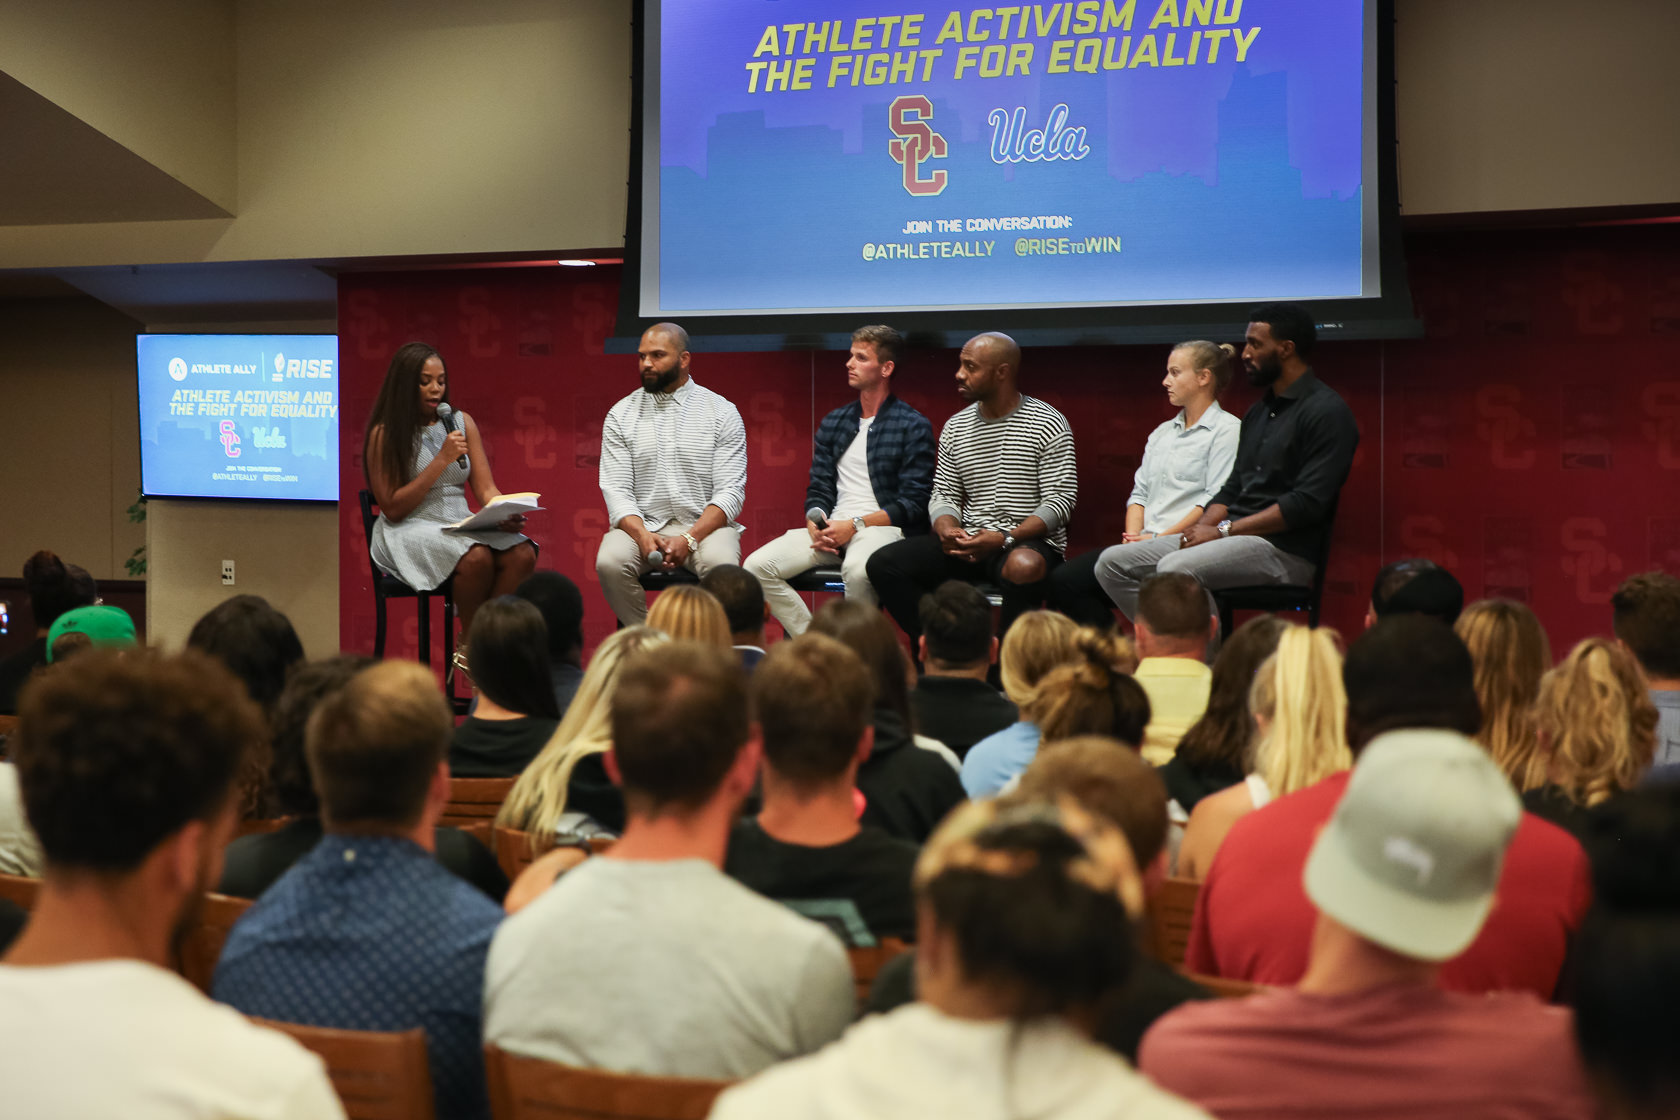 180716-kirby-gladstein-photograpy-RISE-Panel-USC-3037.jpg